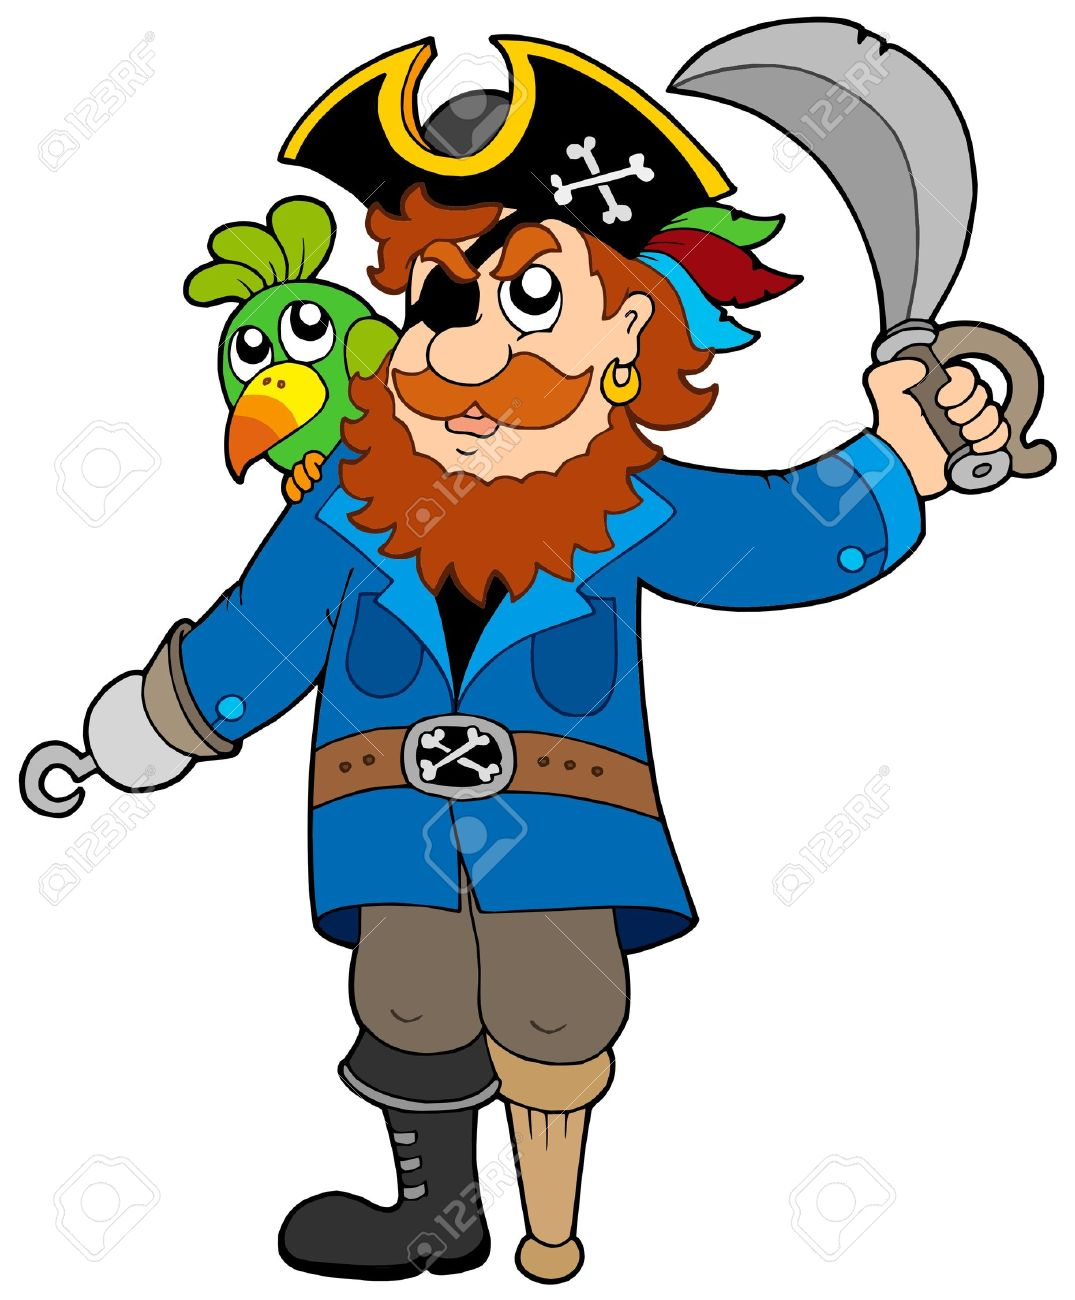 Pirate with parrot and sabre - vector illustration. Stock Vector - 5257717